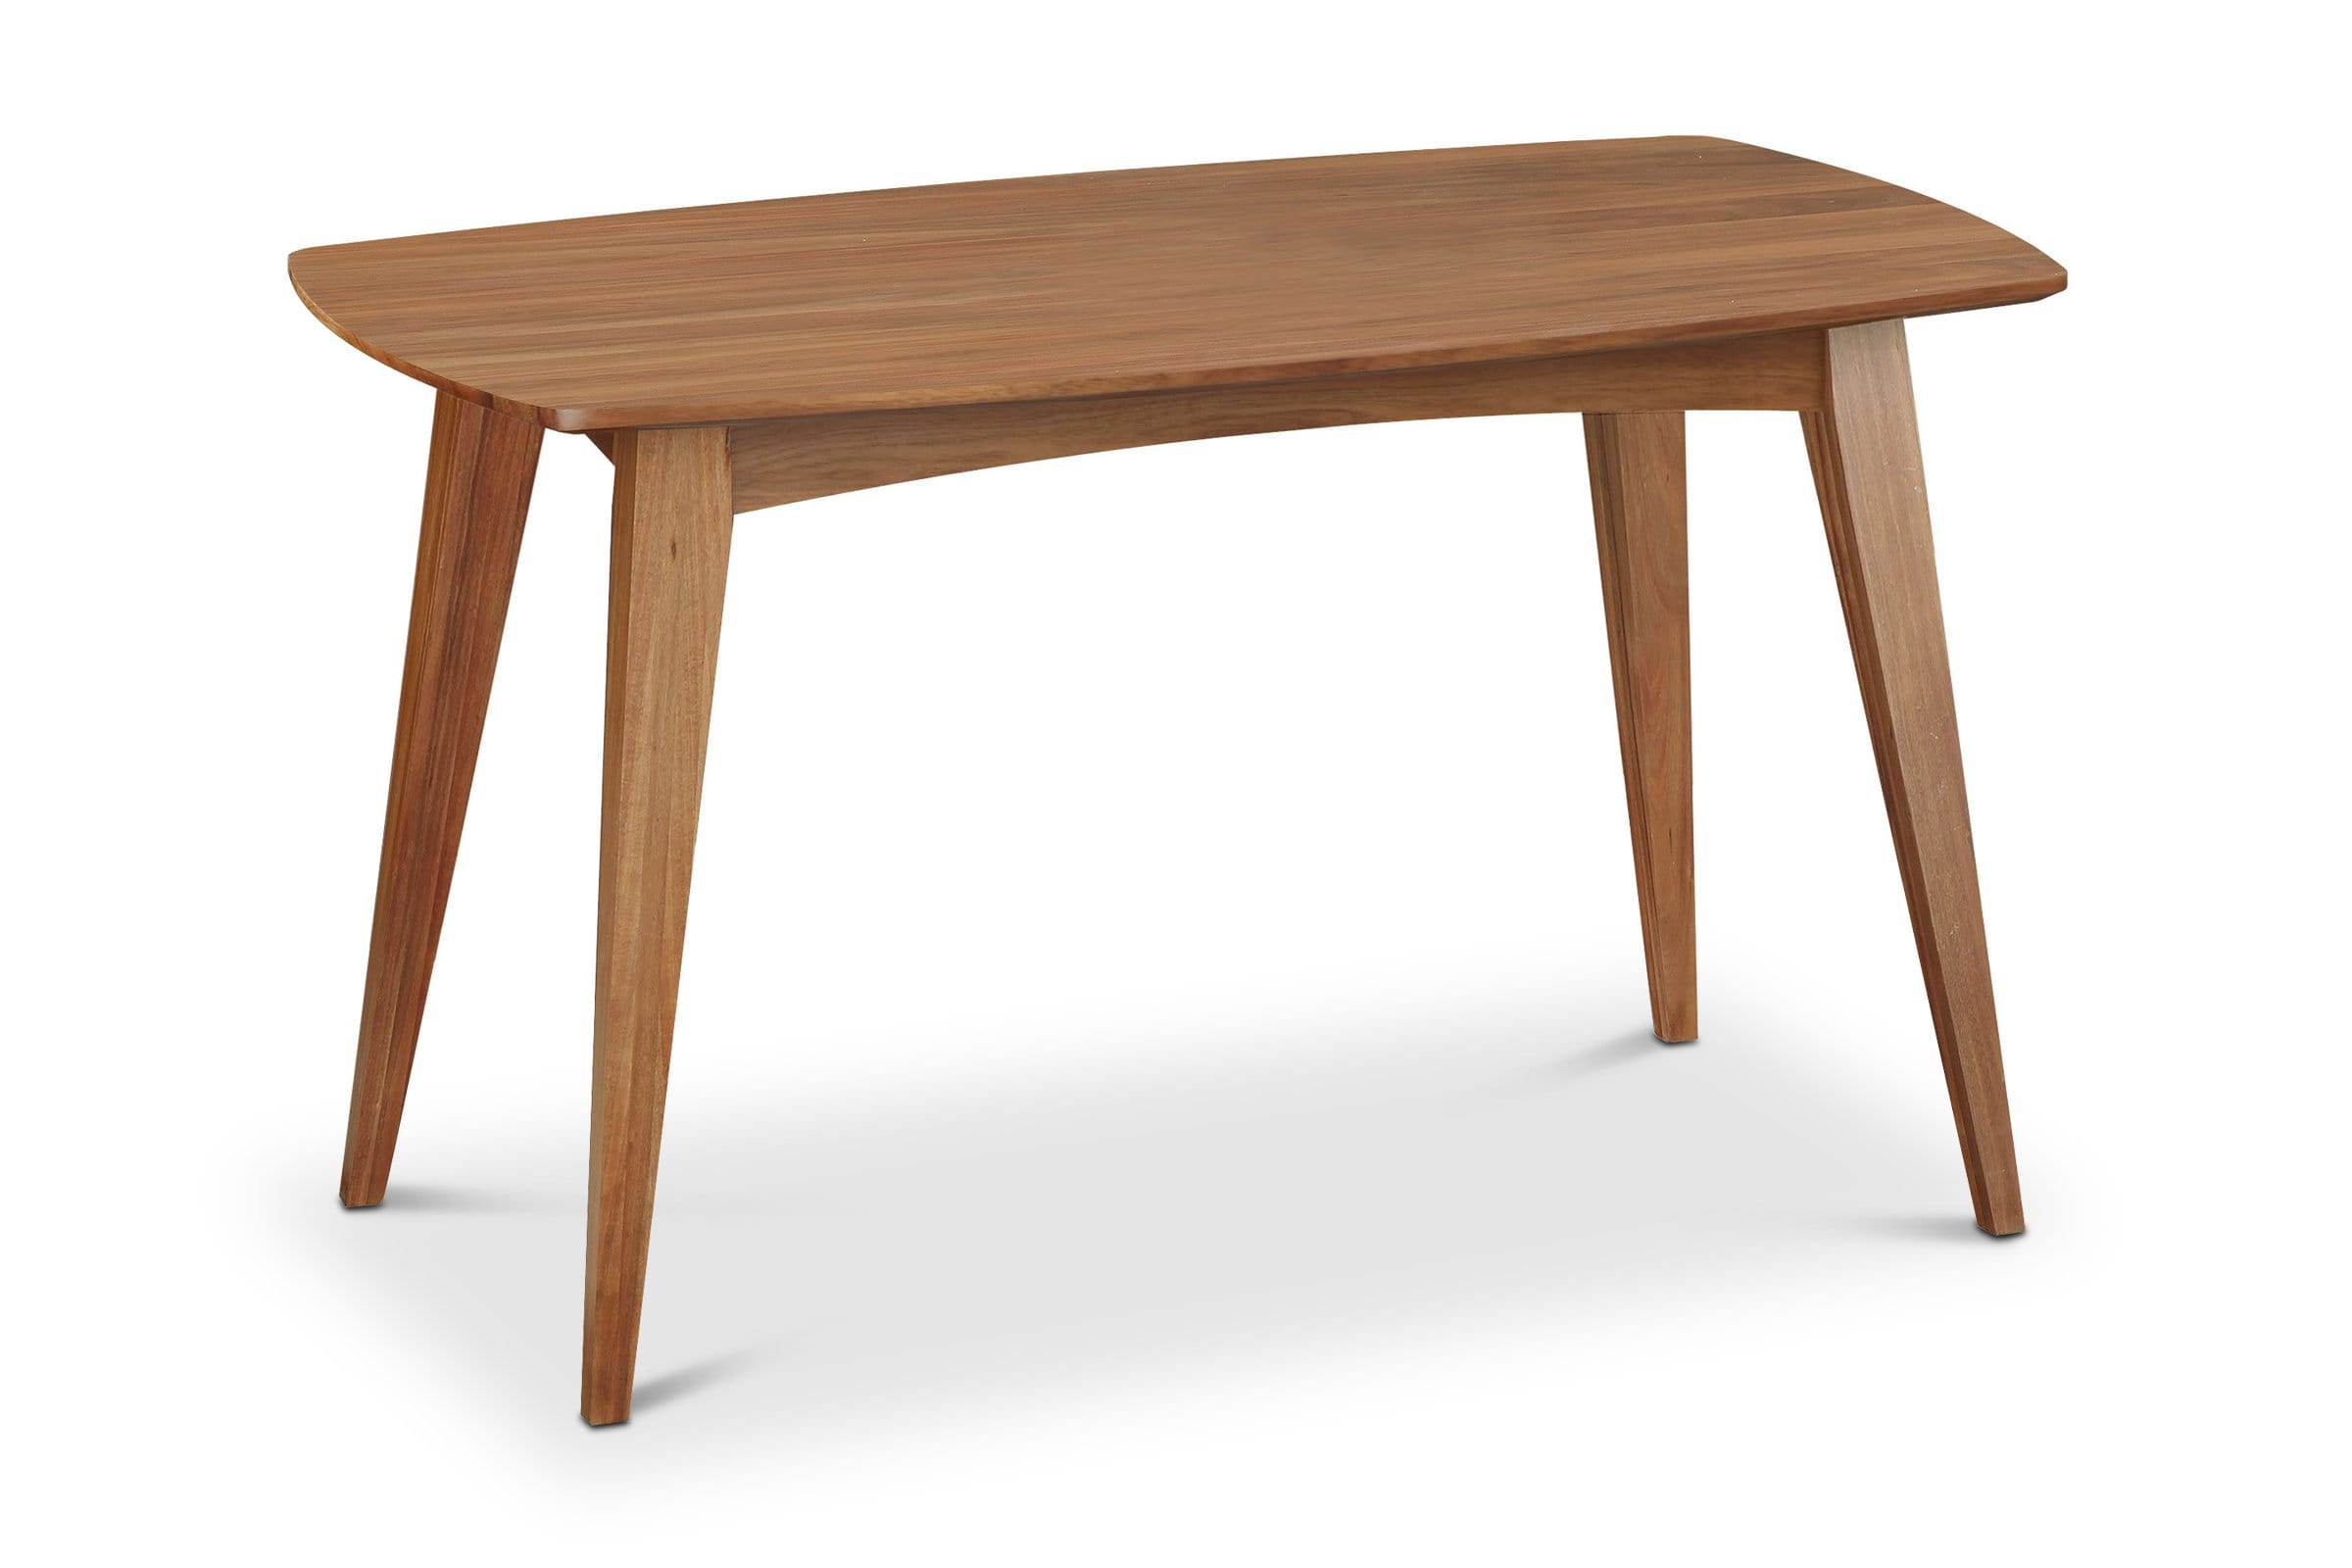 Juniper Bar Table - - Modern Furniture - Sold by Apt2B - Modern Dining Tables Sold by Apt2B